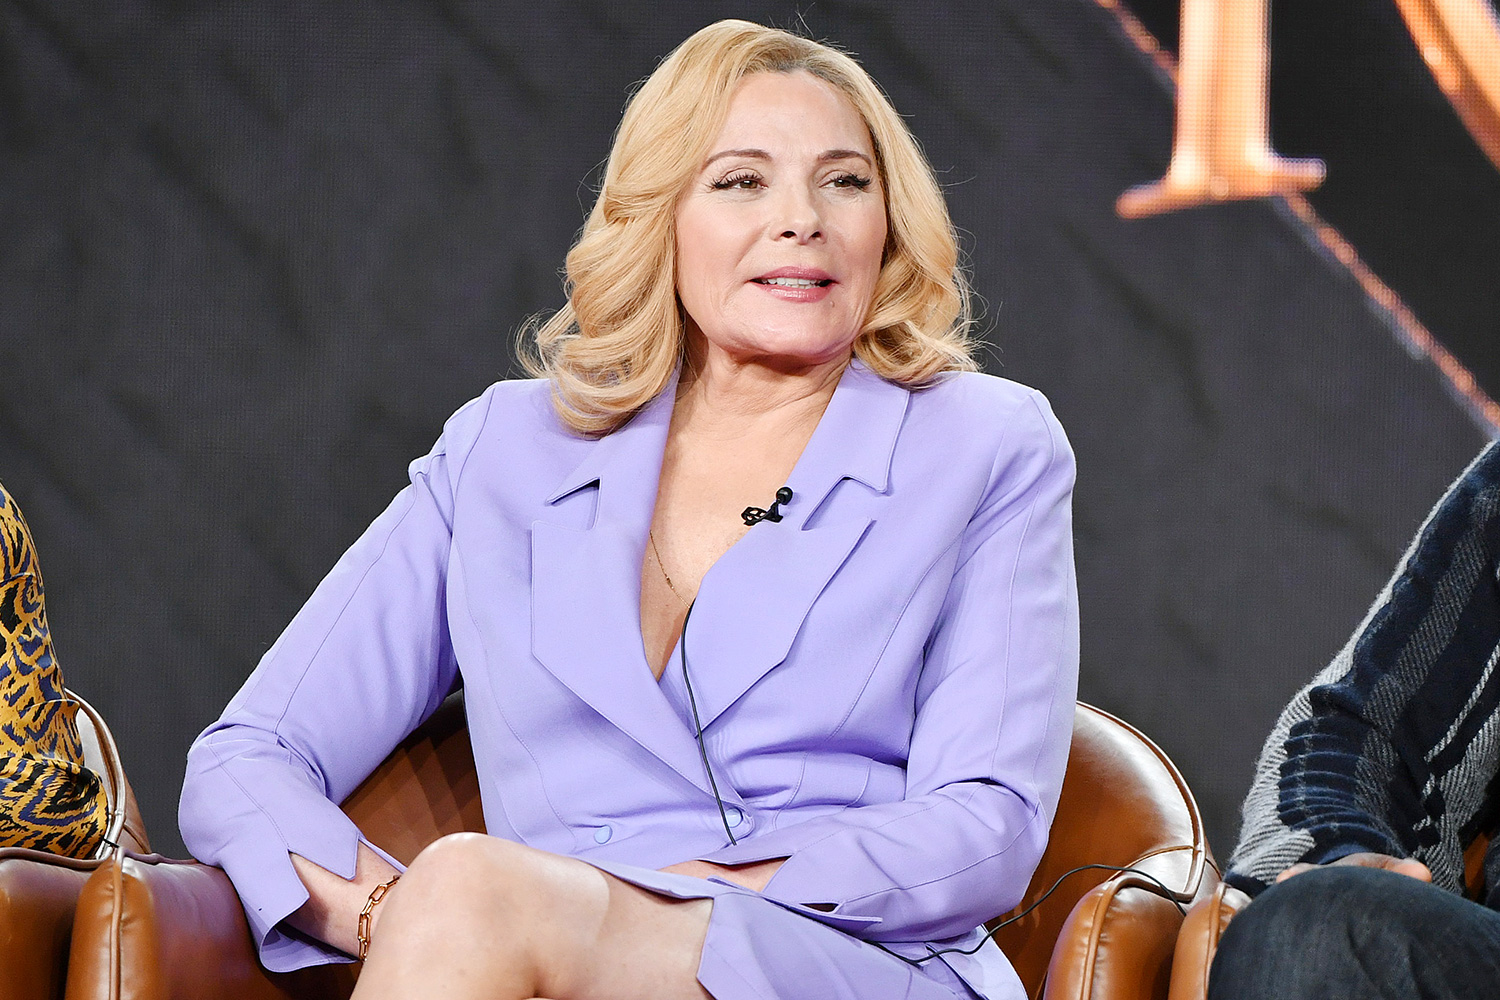 Kim Cattrall of 'Filthy Rich' speaks during the Fox segment of the 2020 Winter TCA Press Tour at The Langham Huntington, Pasadena on January 07, 2020 in Pasadena, California